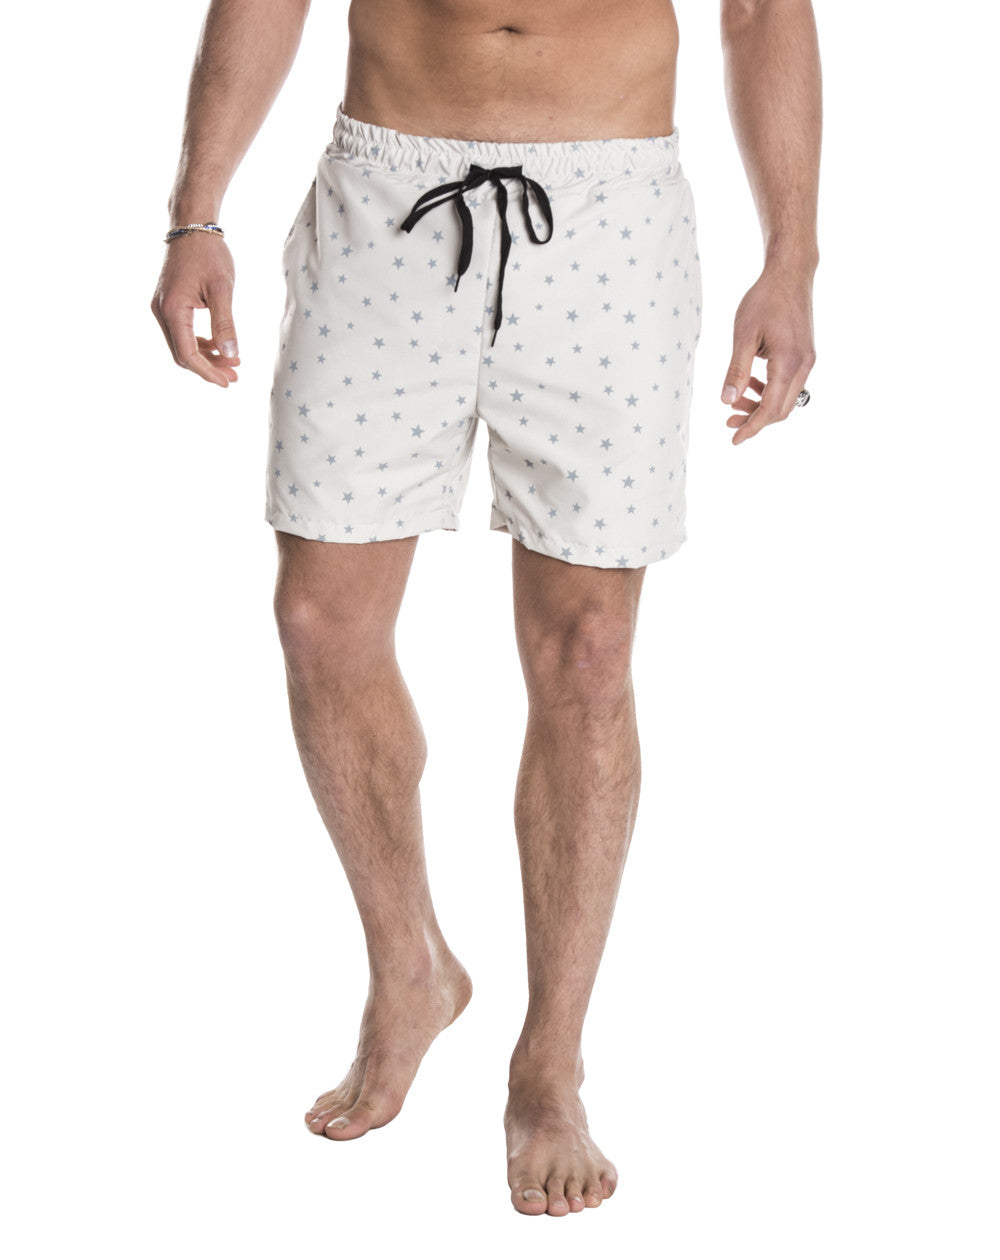 MEN'S CLOTHING | BOTTOMS | SWIMWEAR | STARS SWIM PANTS | SWIM SHORTS | TECHNICAL FABRIC | ELASTICATED DRAWSTRING WAISTBAND | MESH LINING | MID LENGTH | SIDE POCKETS | POLYESTER | #SUMMERVIBES | NOHOW